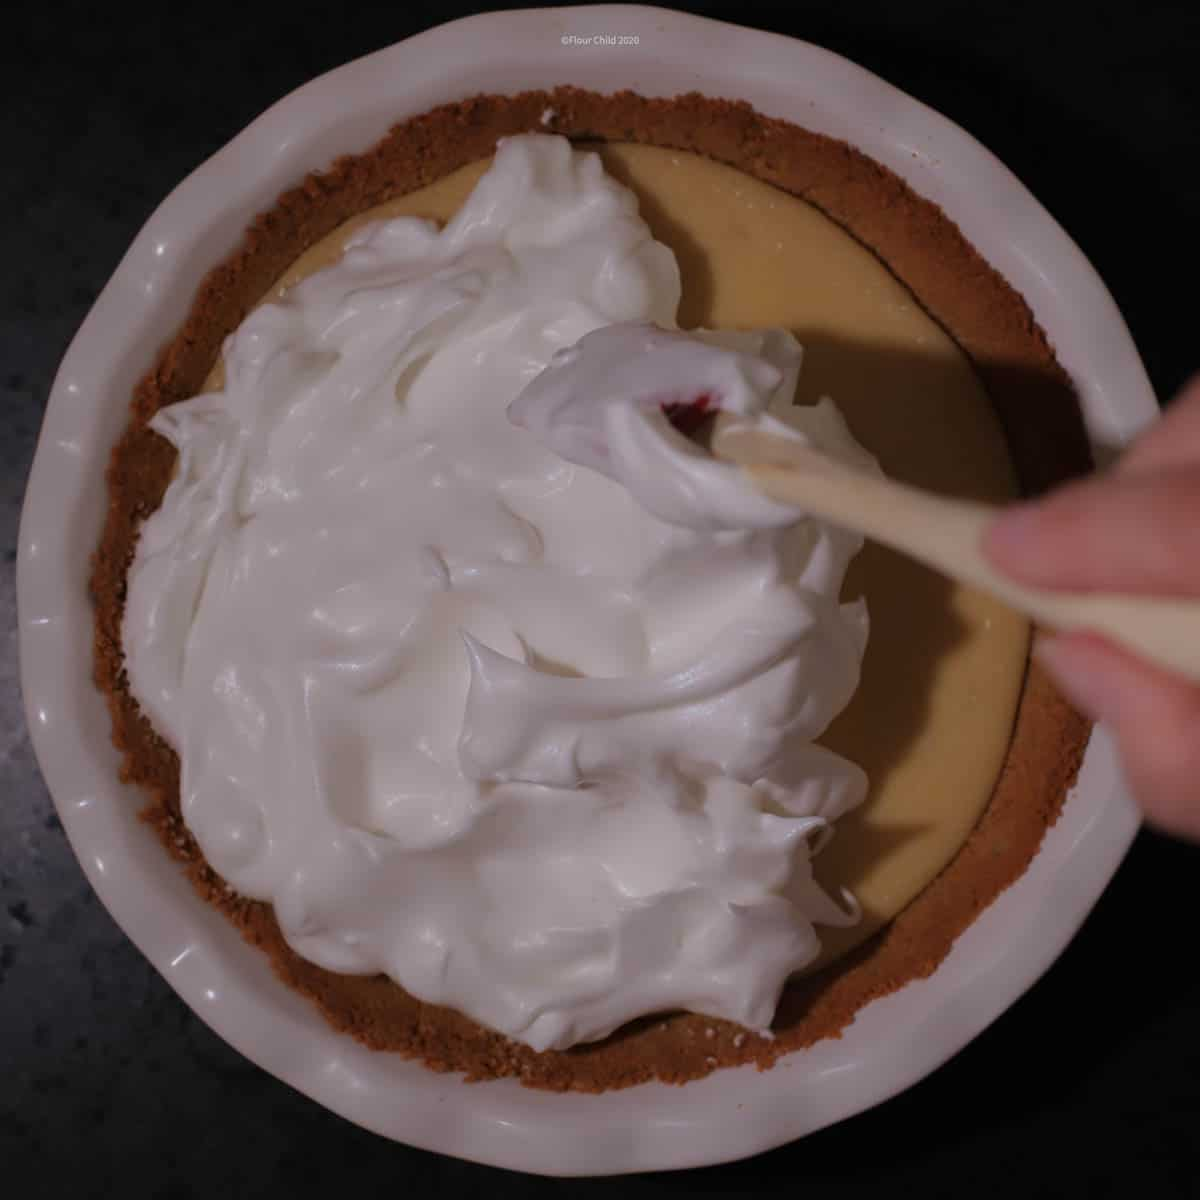 Adding meringue to the top of the pie